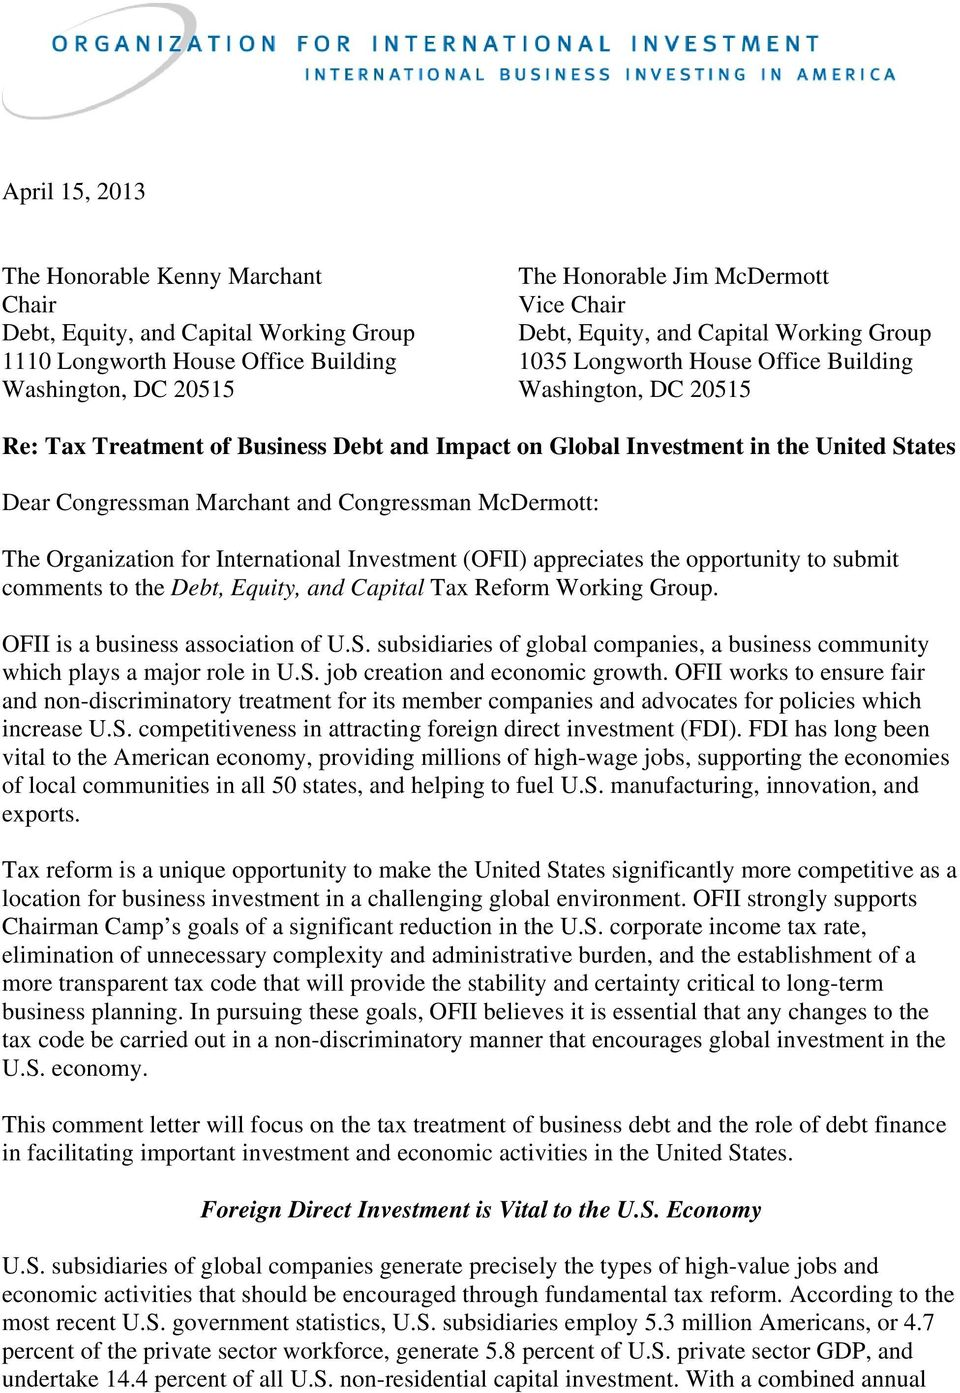 Marchant and Congressman McDermott: The Organization for International Investment (OFII) appreciates the opportunity to submit comments to the Debt, Equity, and Capital Tax Reform Working Group.